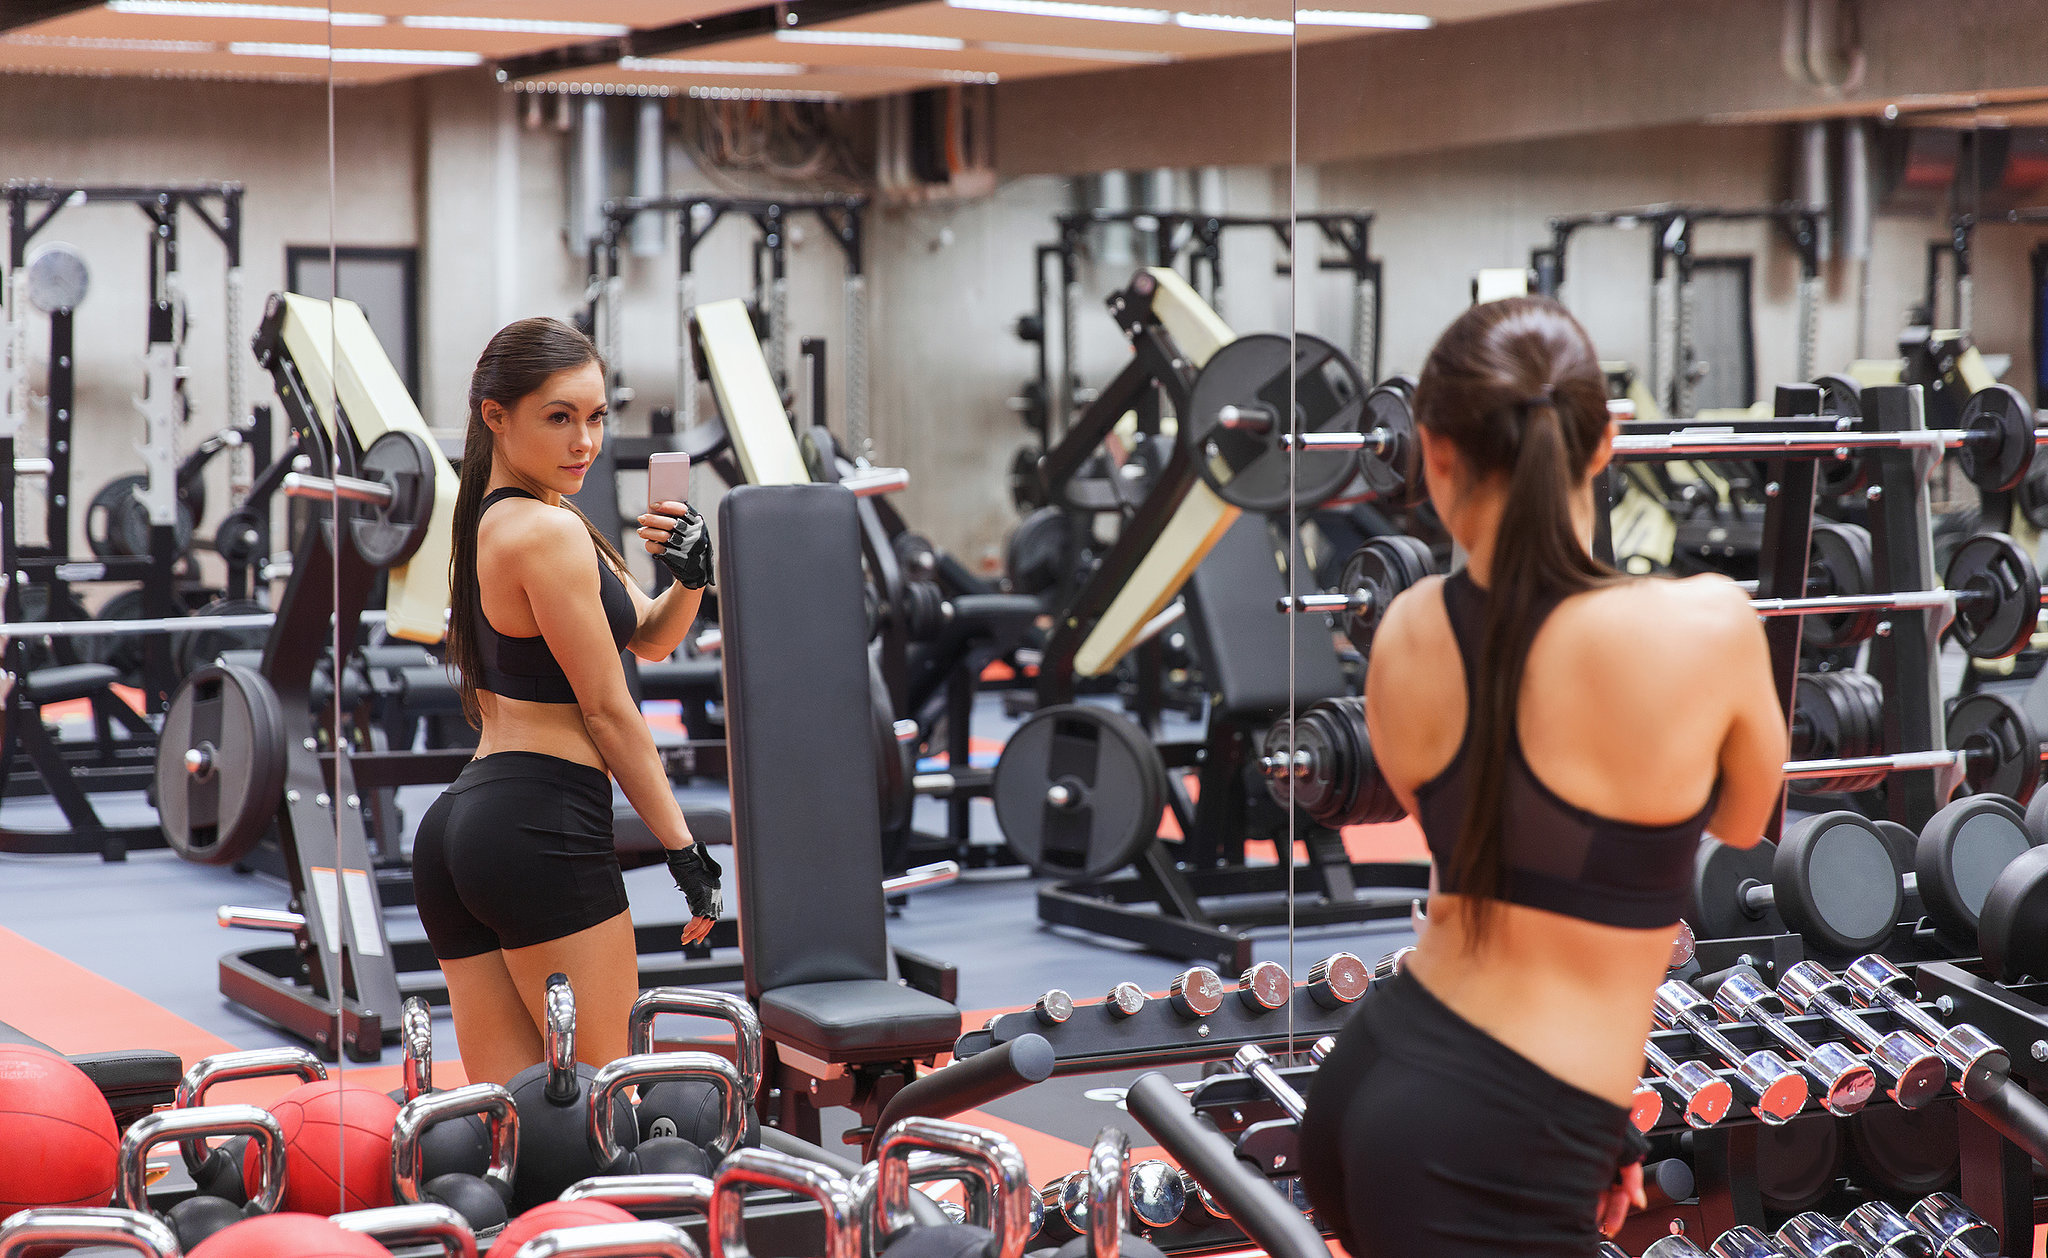 Gym Wallpapers High Quality Download Free